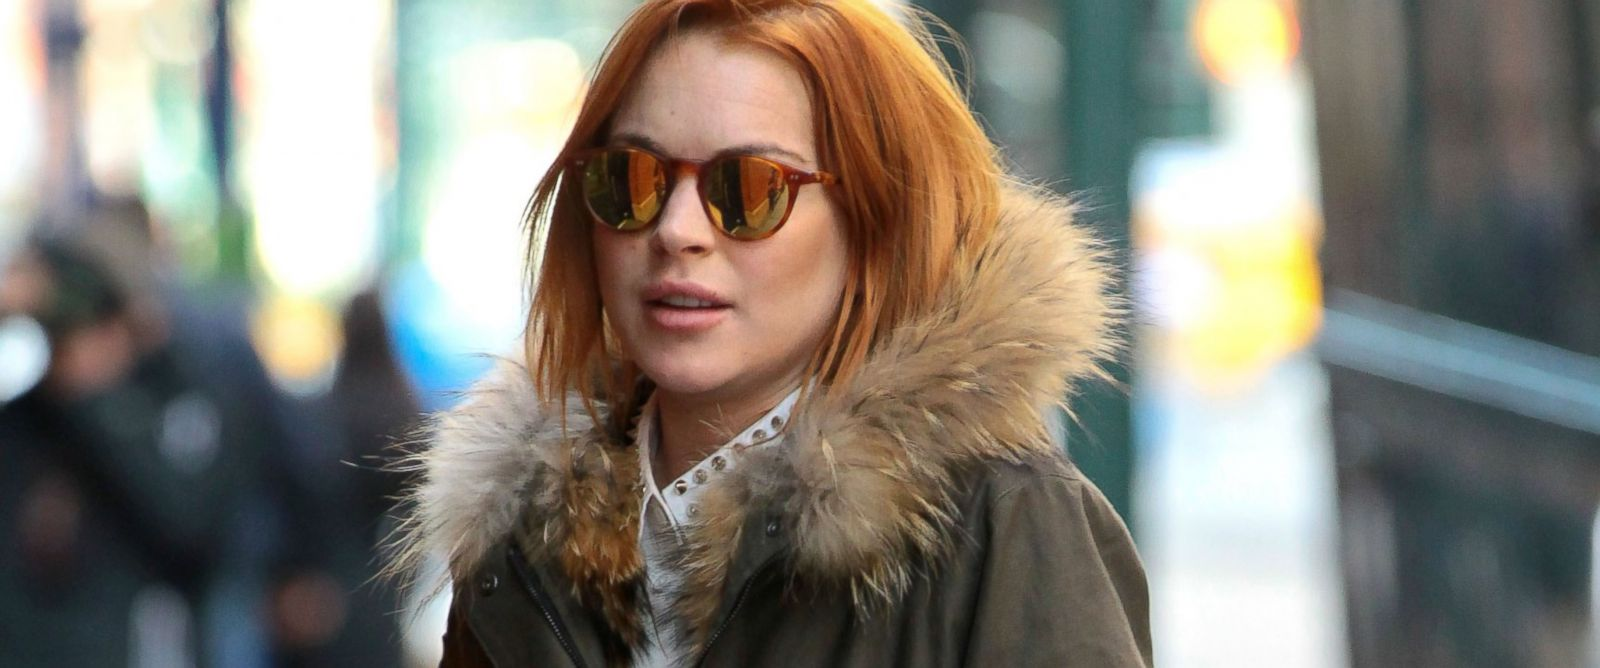 PHOTO: Lindsay Lohan is seen on March 24, 2014 in New York City.